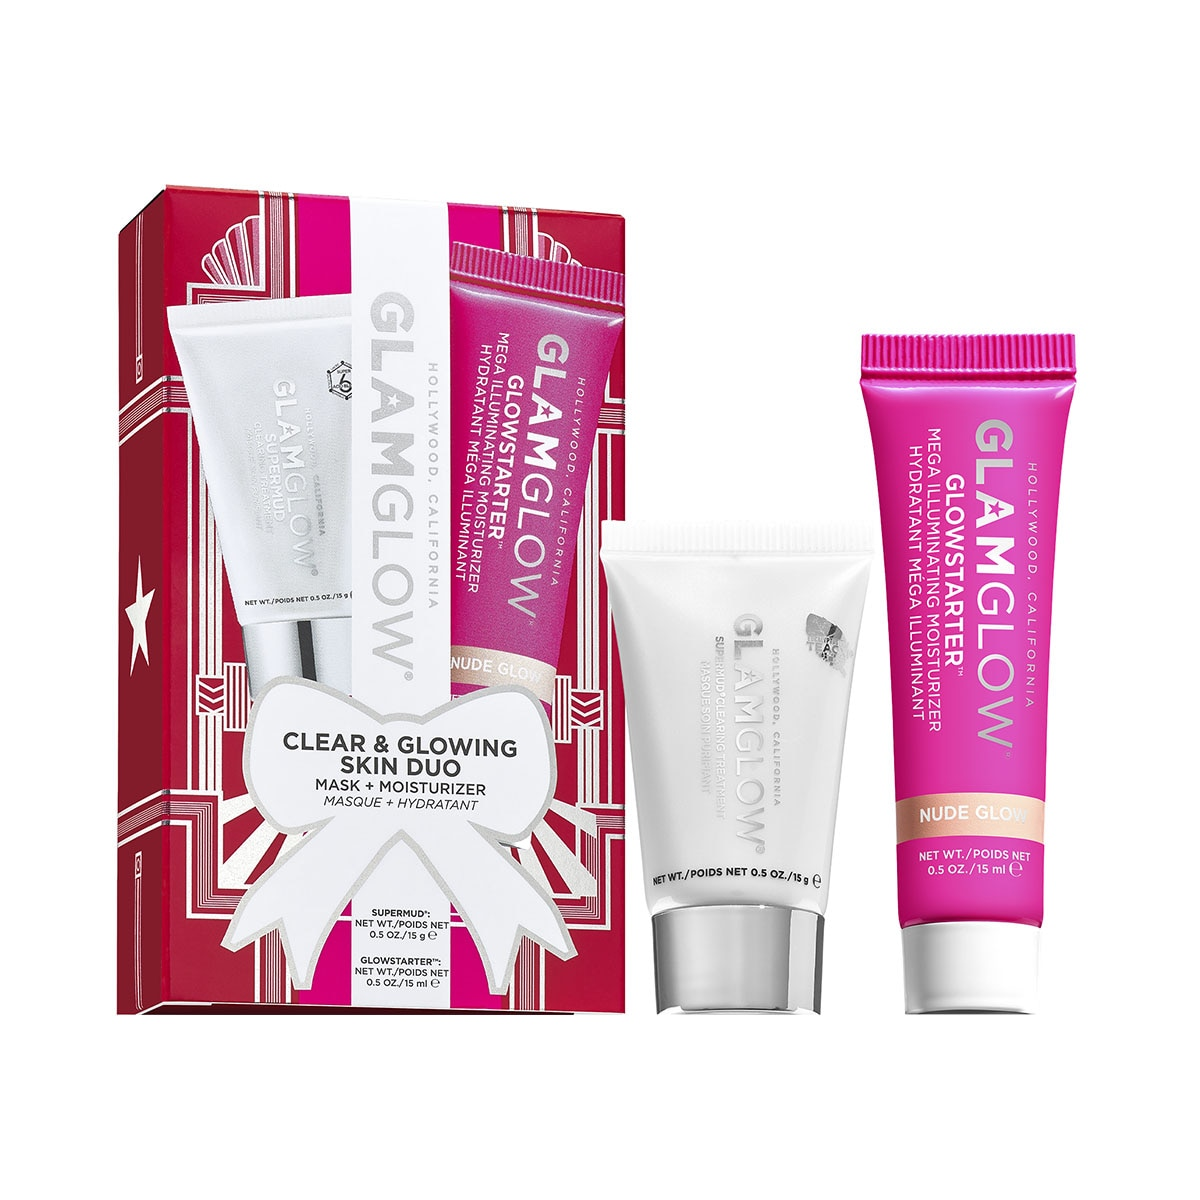 CLEAR & GLOWING SKIN DUO (DUO DE MASCARILLAS) DUO SET